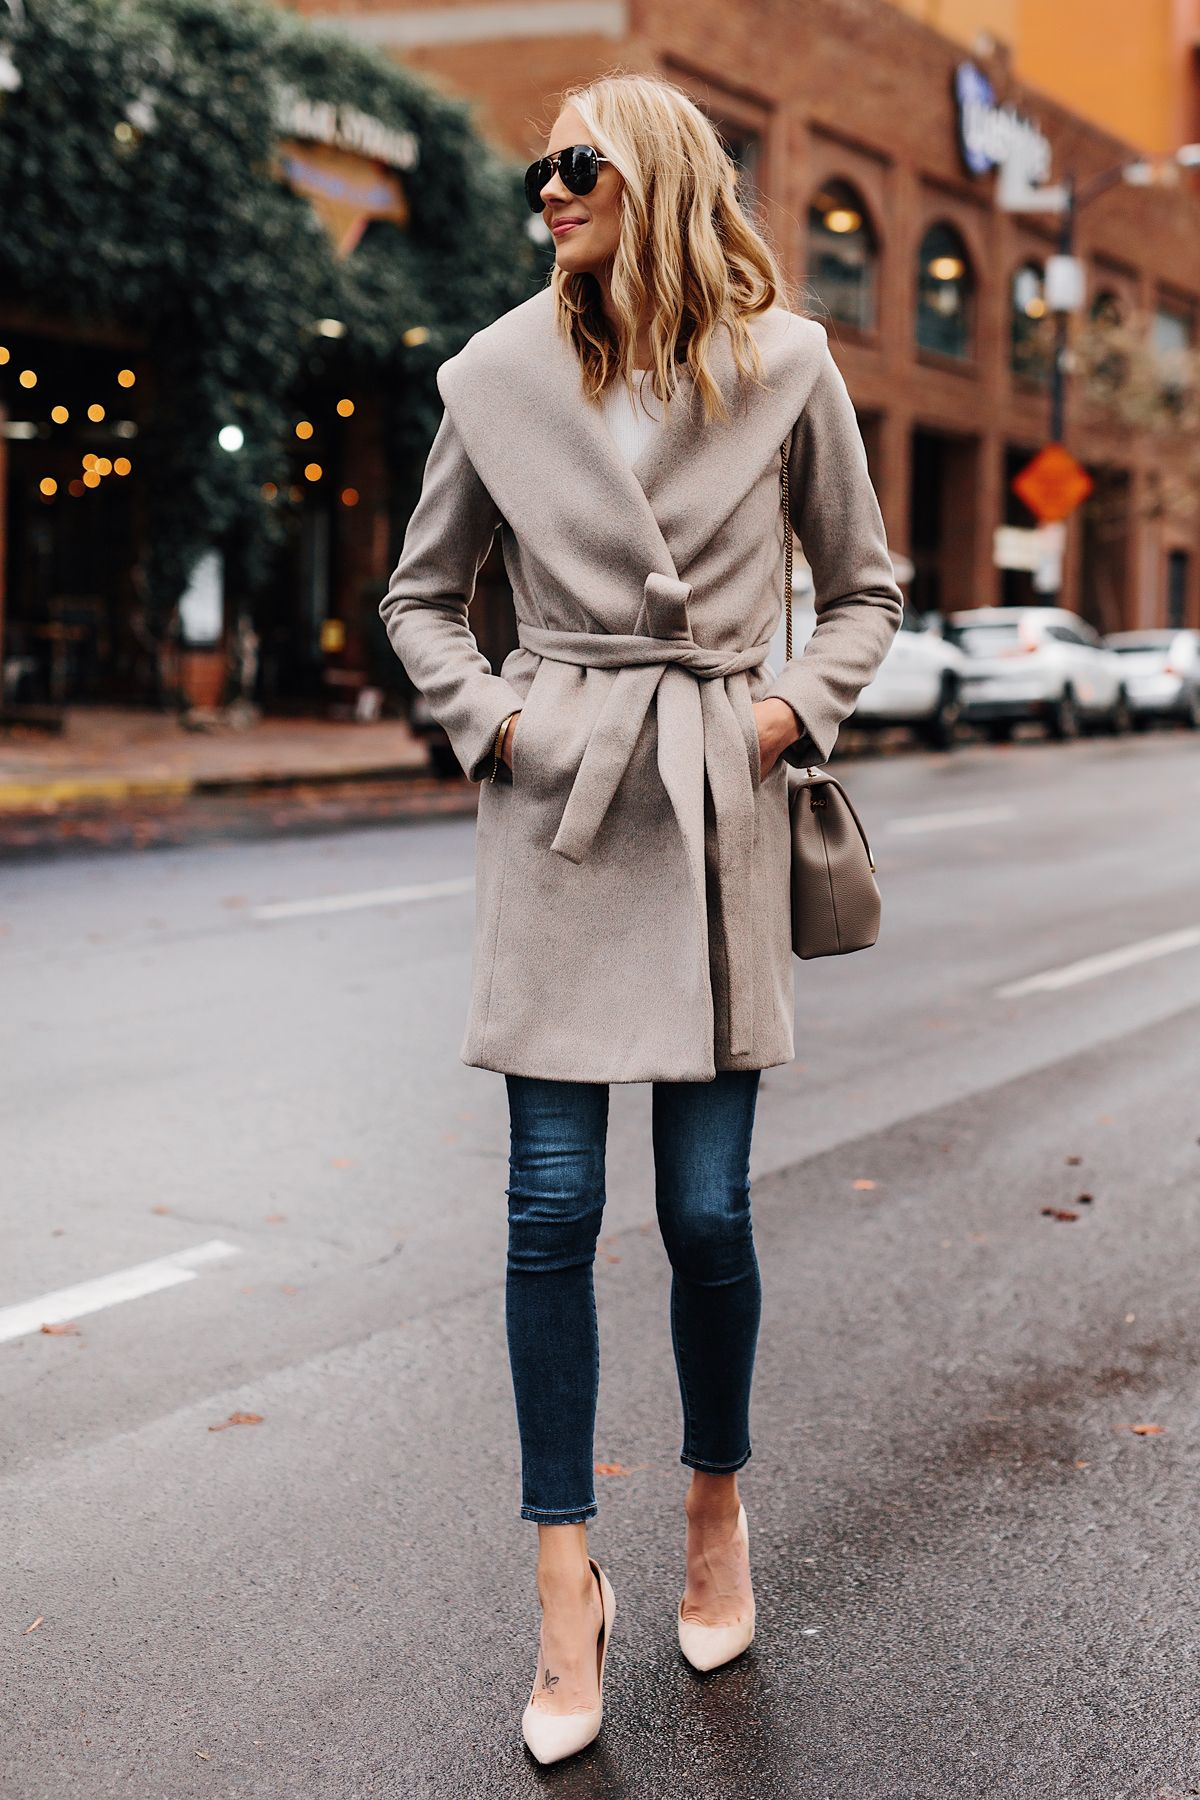 f489fb2f3a Blonde Woman Wearing Ann Taylor Beige Wrap Coat Denim Skinny Jeans Beige  Pumps Outfit Fashion Jackson San Diego Fashion Blogger Street Style